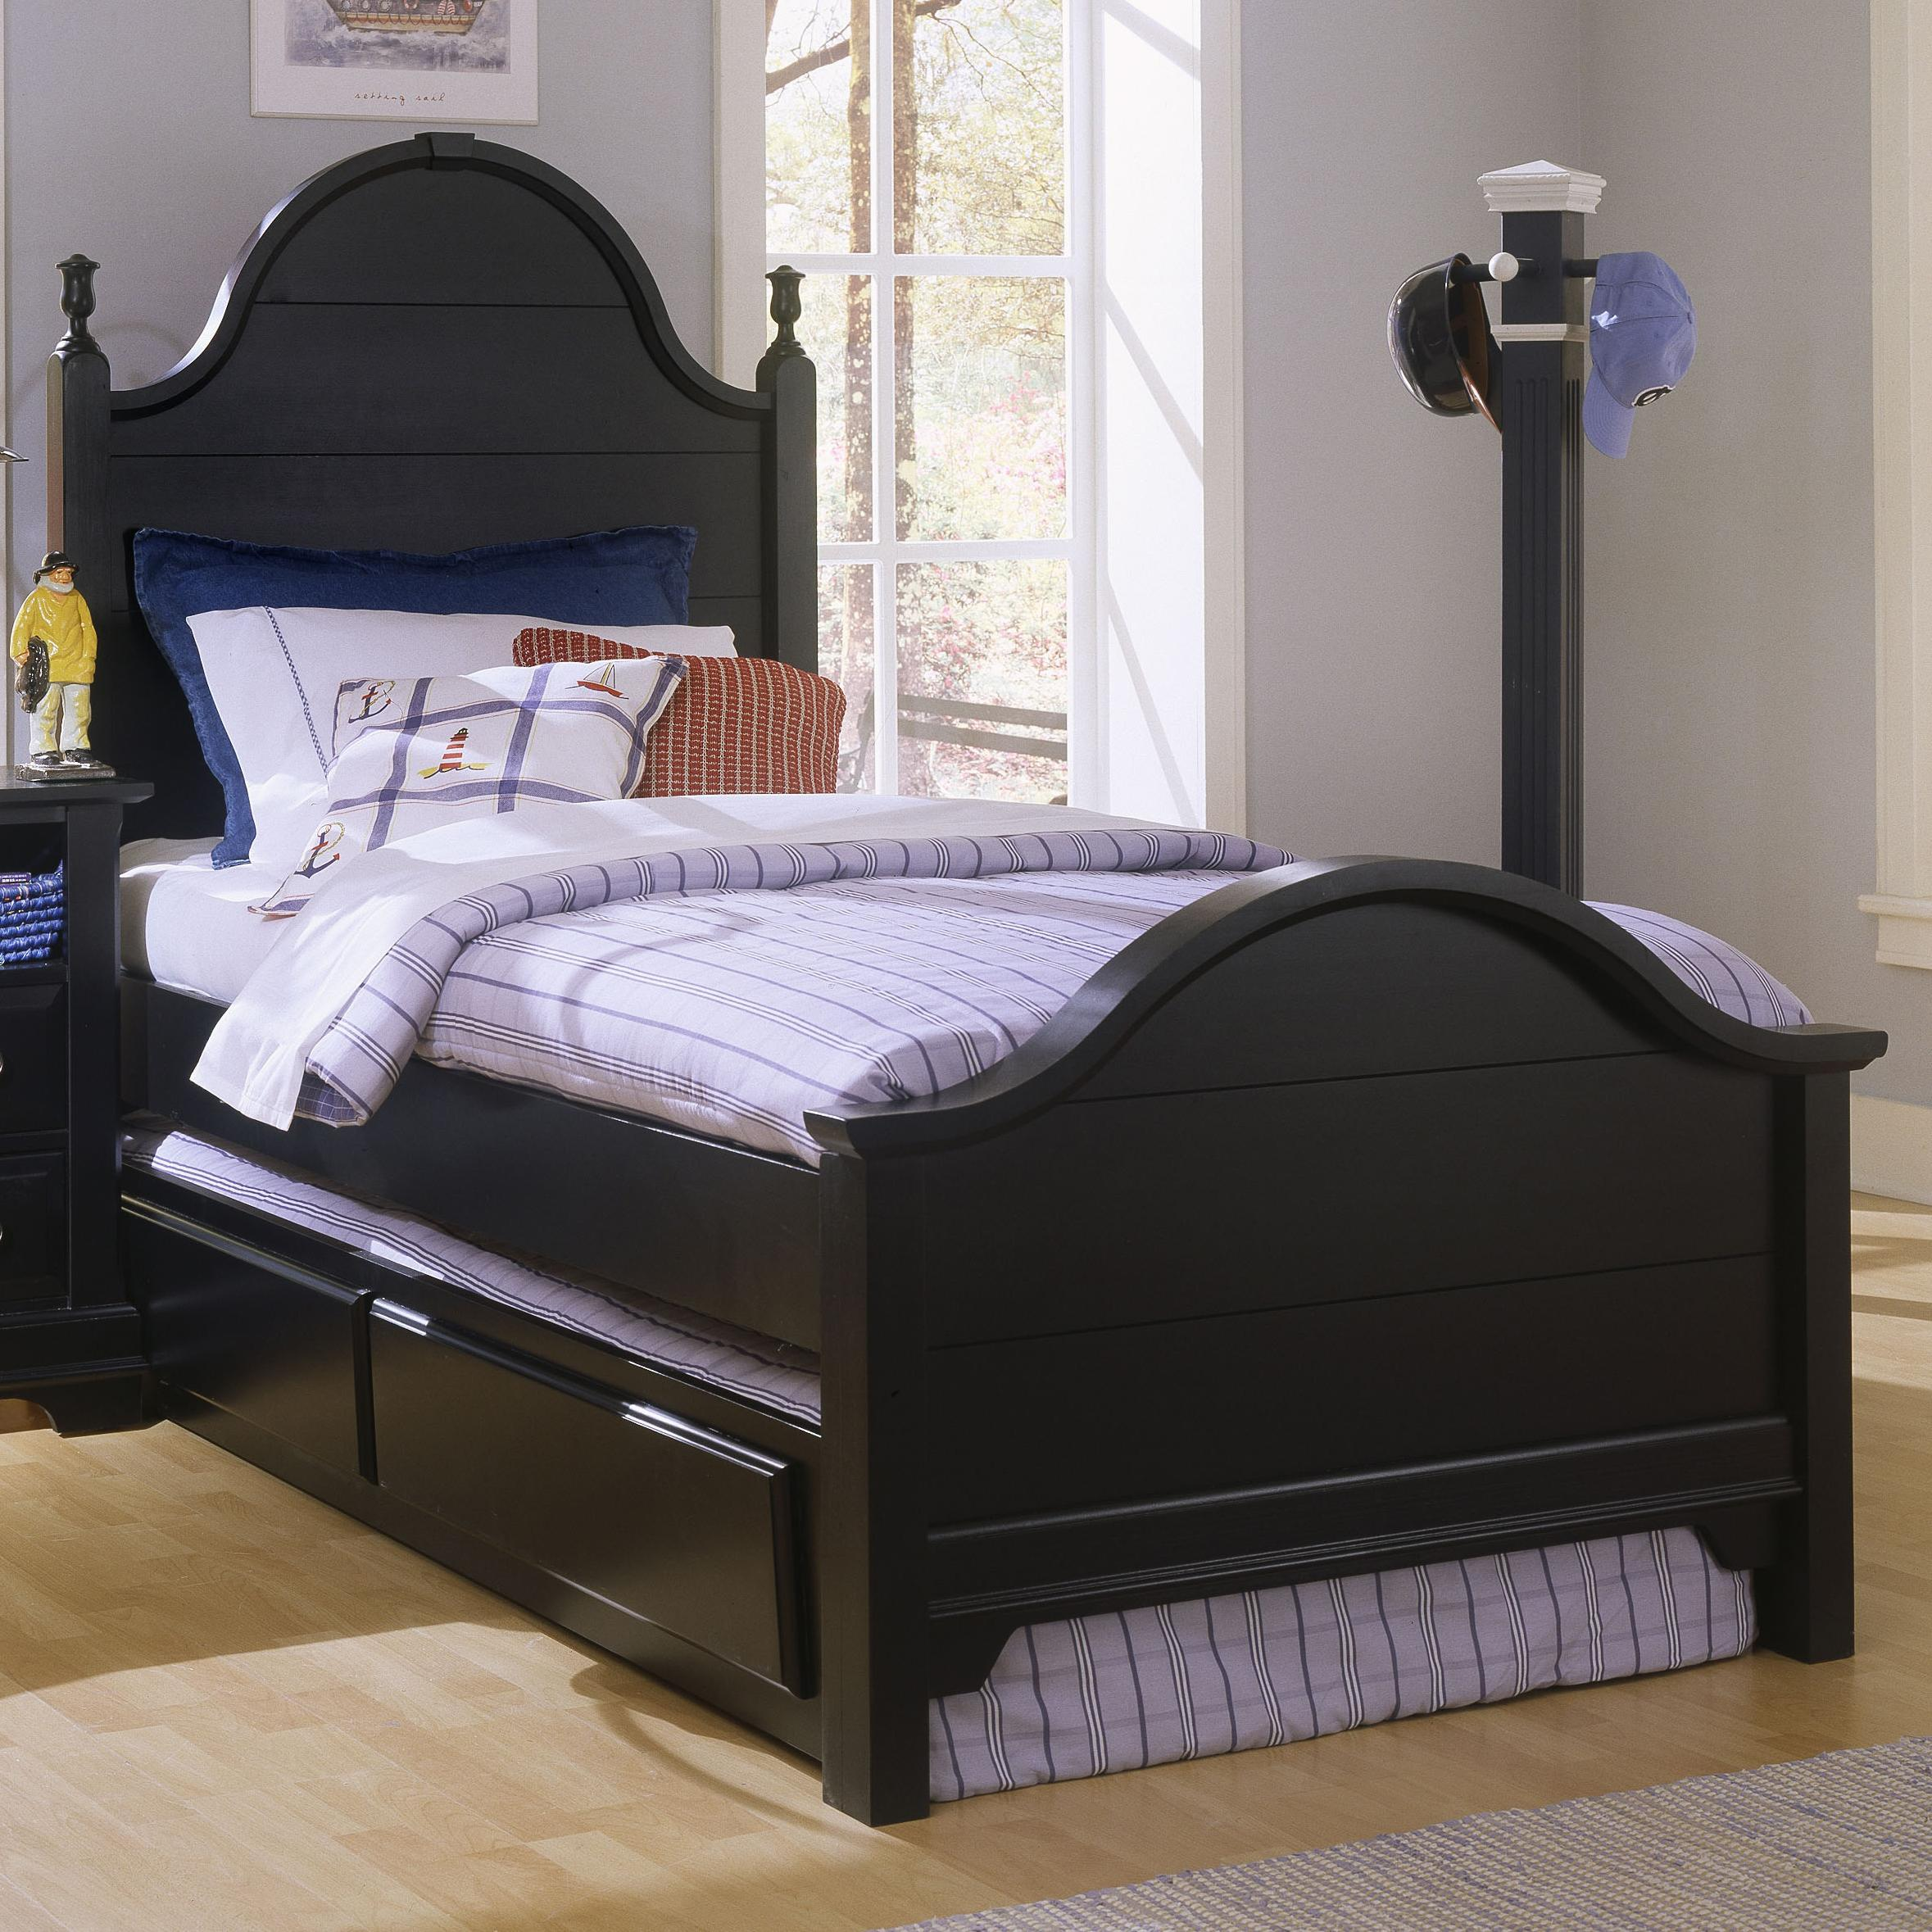 Vaughan bassett cottage twin panel bed with trundle for Panel bed mattress